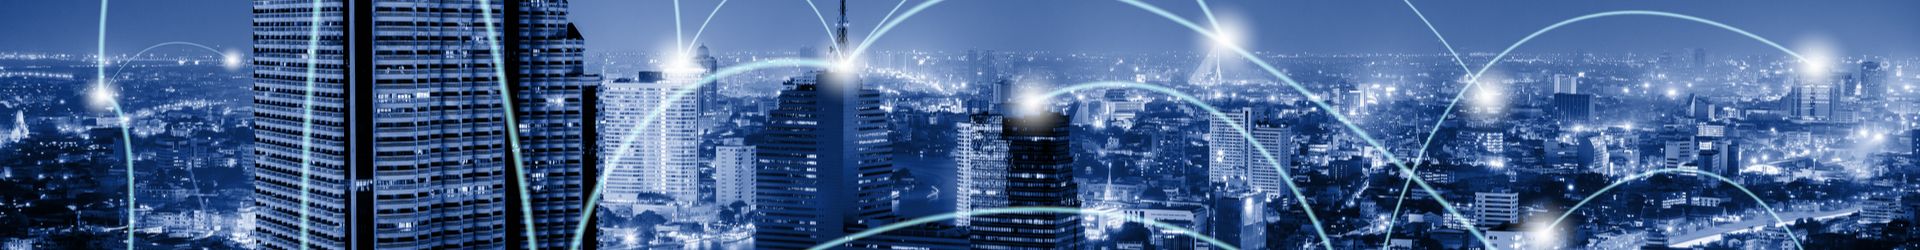 Leveraging 5G, Network Slicing and MEC to Deliver Real-World Services and True Business Value